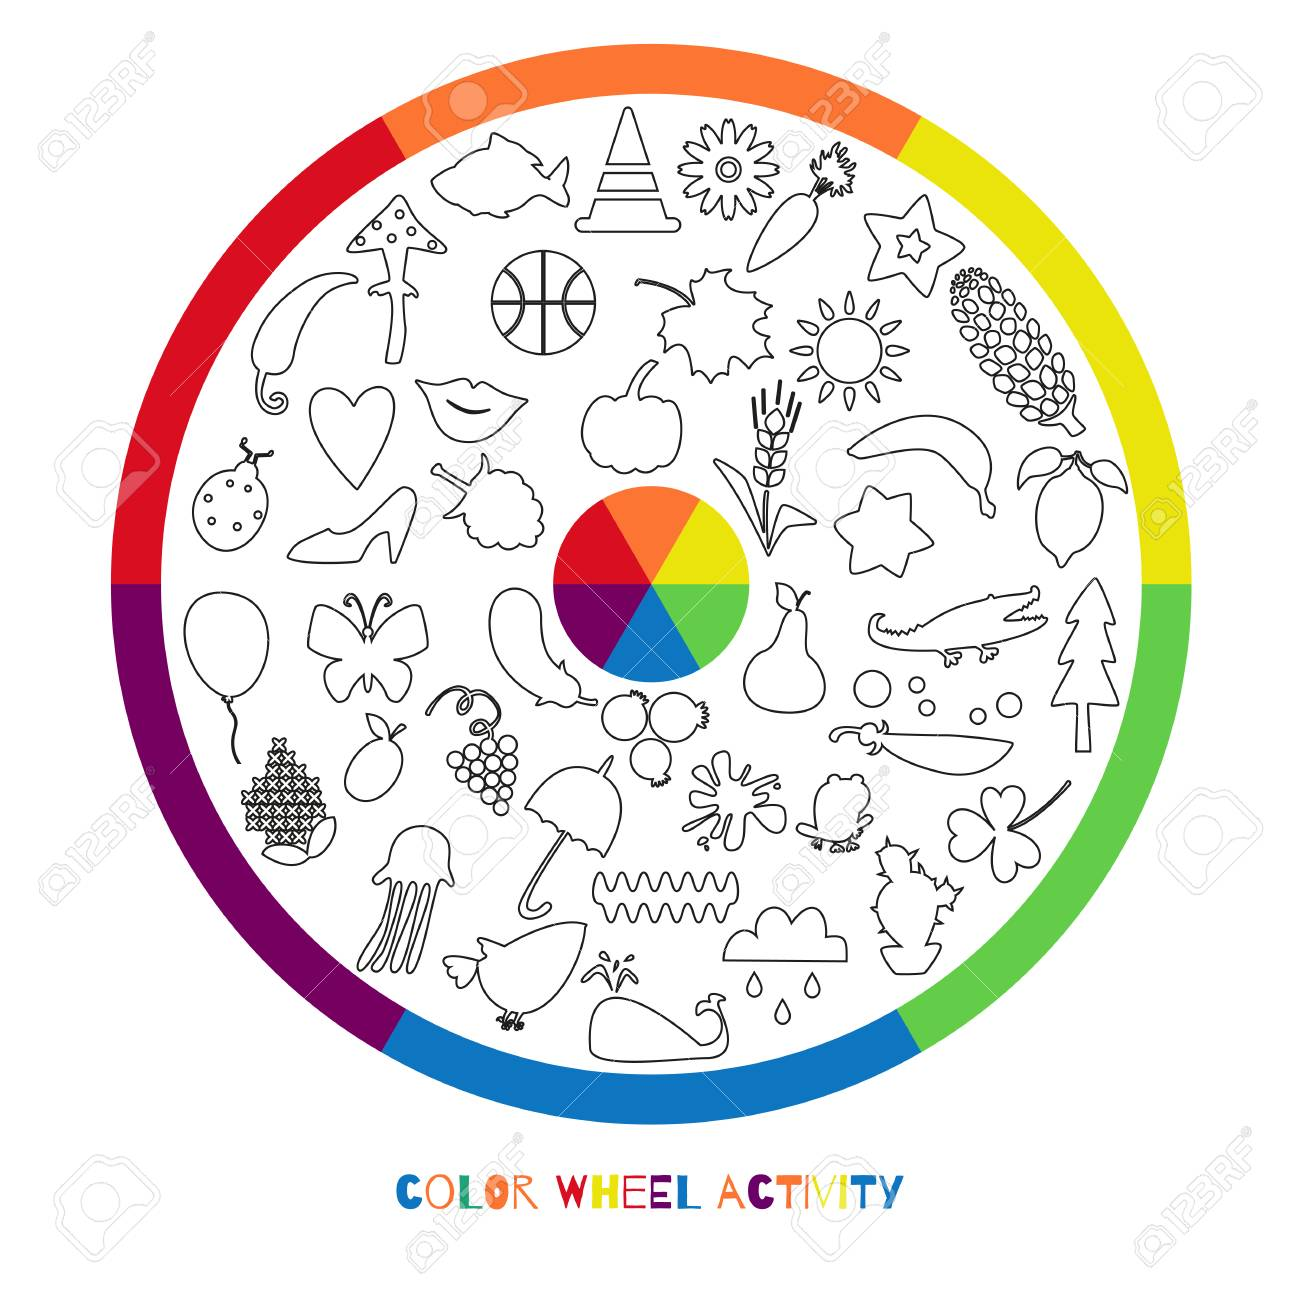 Color Wheel Activity For Coloring Children With Objects Of